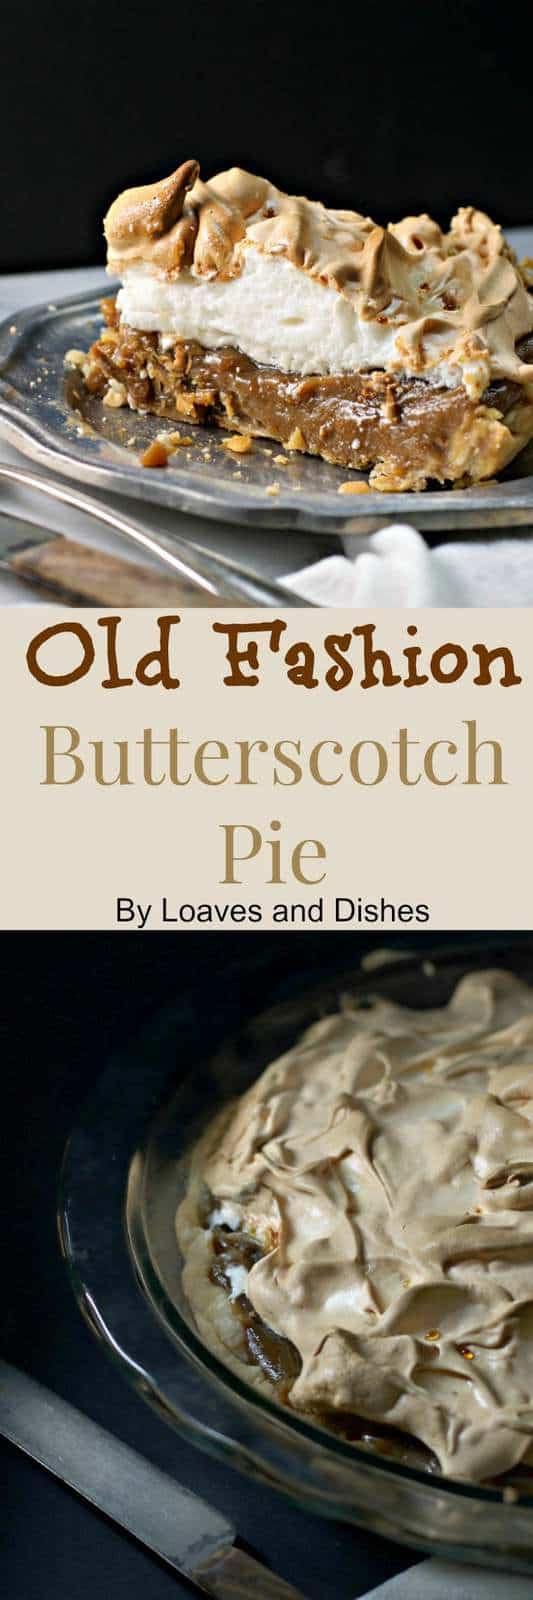 Old Fashion Butterscotch Pie Loaves And Dishes